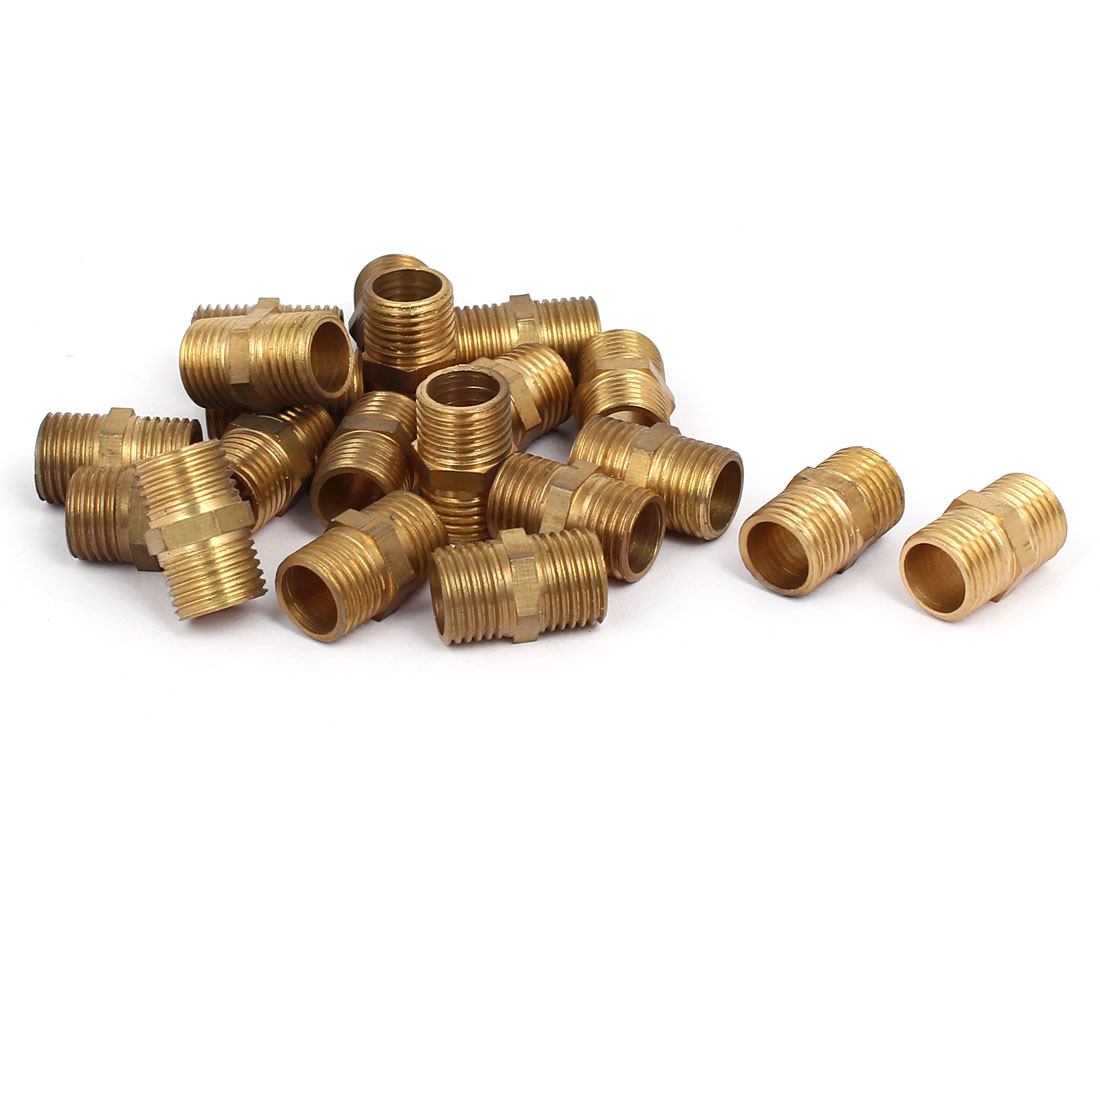 1/4BSP Male Thread Hex Nipple Air Water Pipe Plumbing Connecting Fitting 20pcs